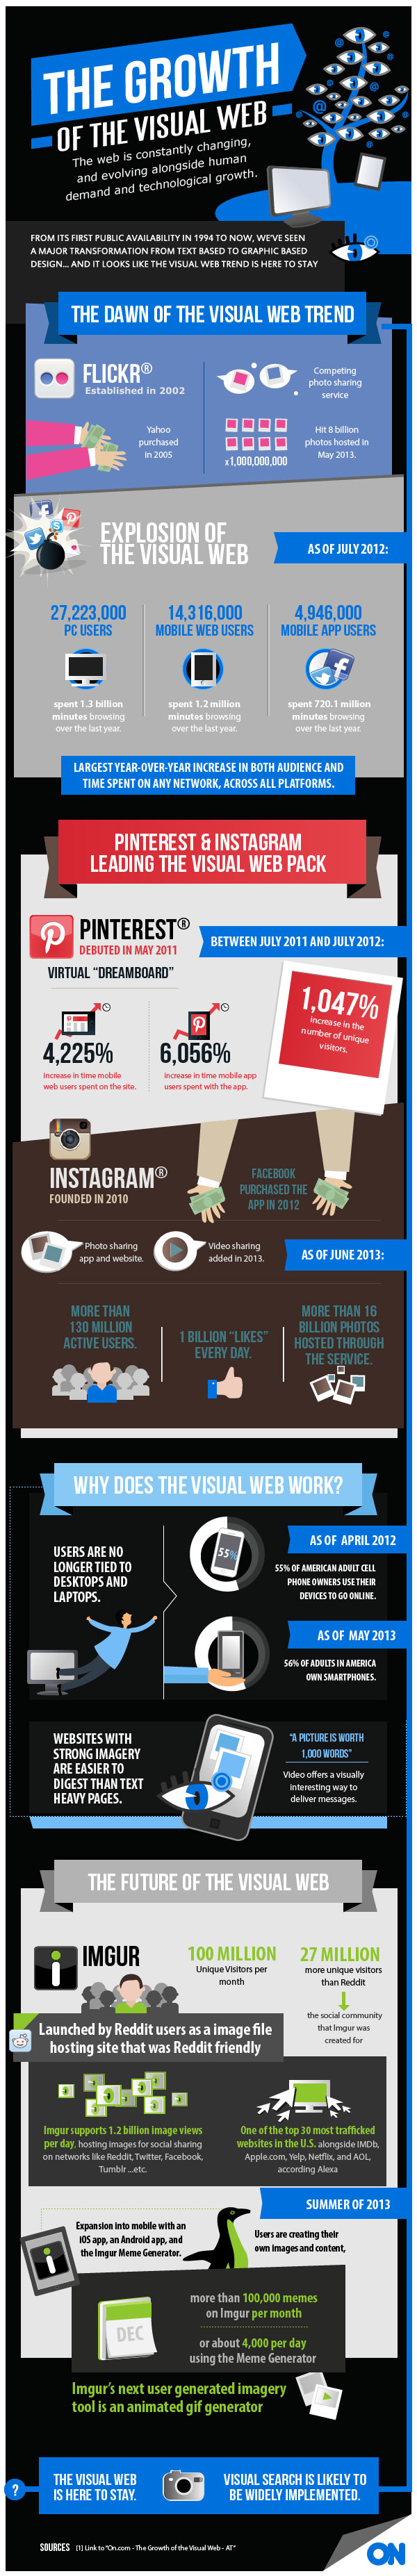 the-growth-of-the-visual-web-infographic